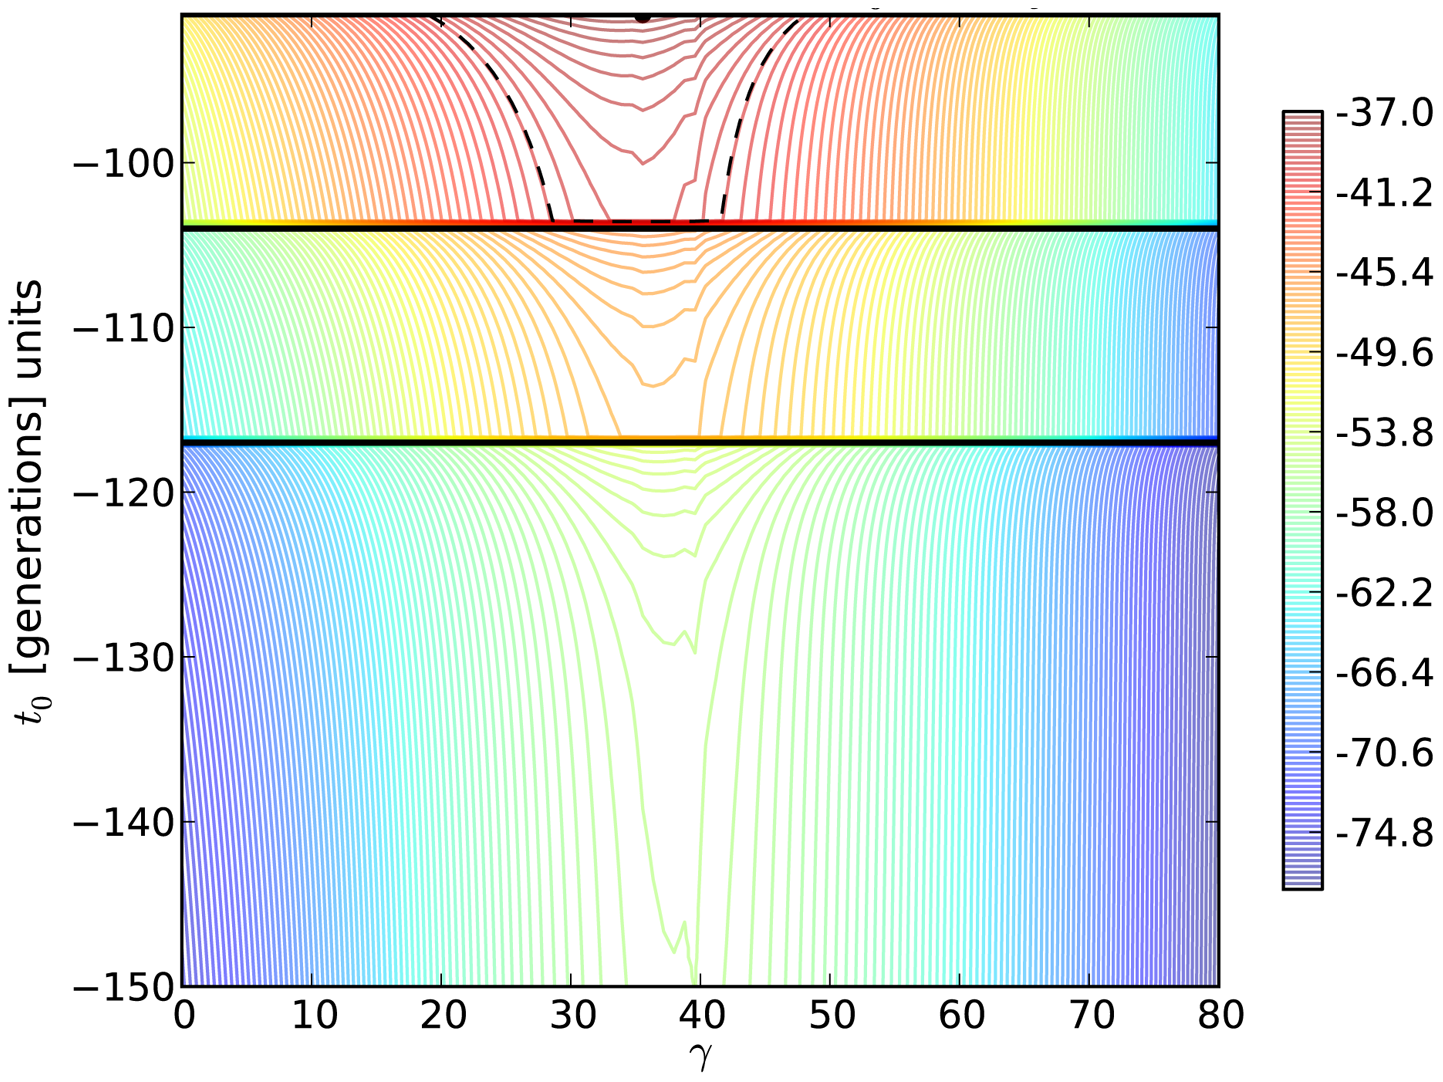 Log-likelihood contours for the H275Y resistance mutation in the presence of oseltamivir.